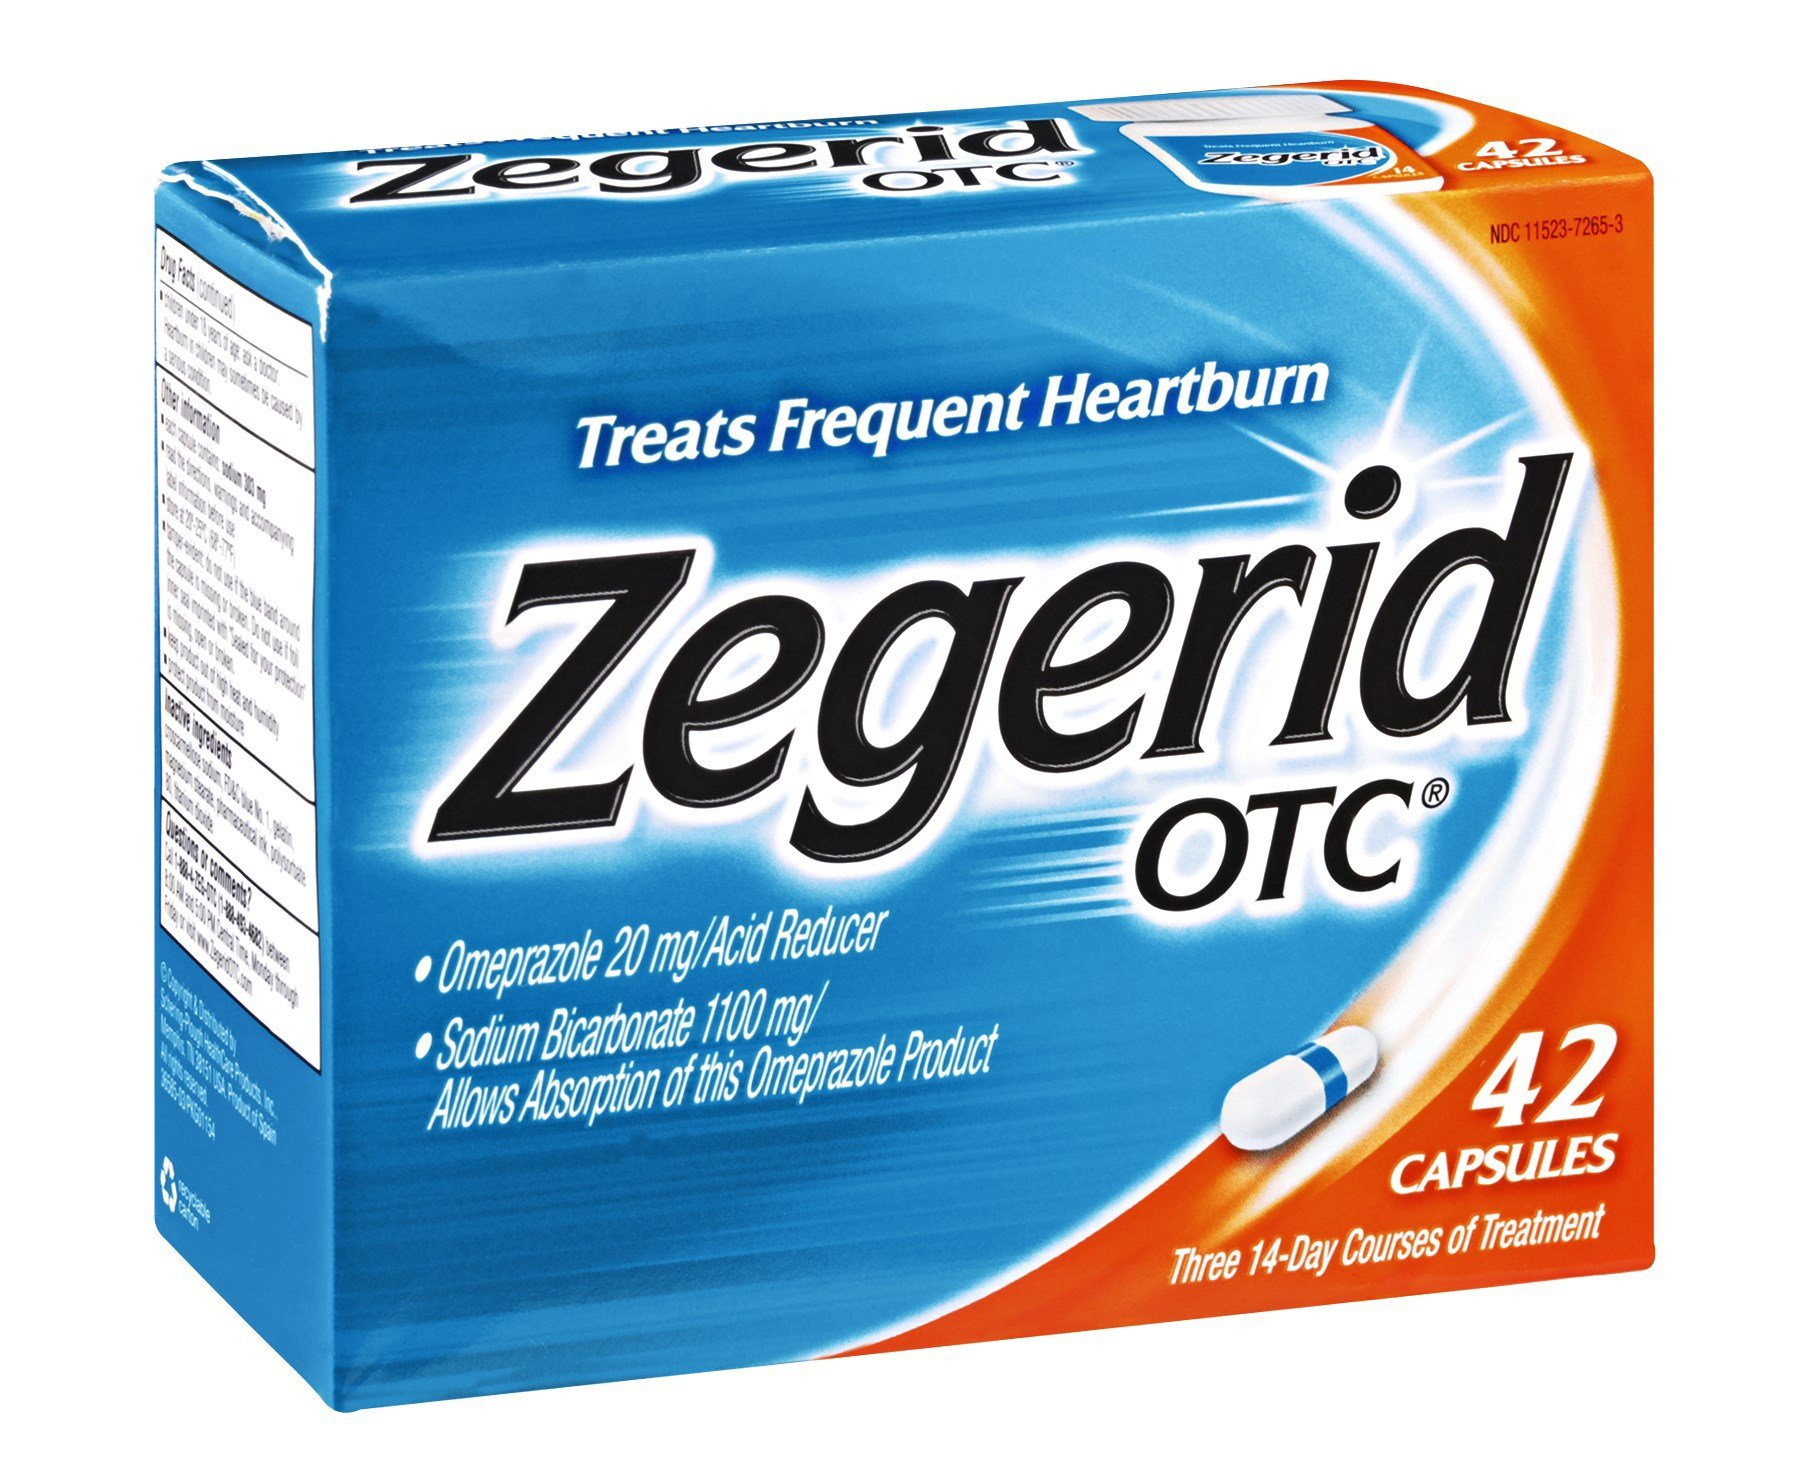 Zegerid OTC Capsules, Pack of 4 by Zegerid